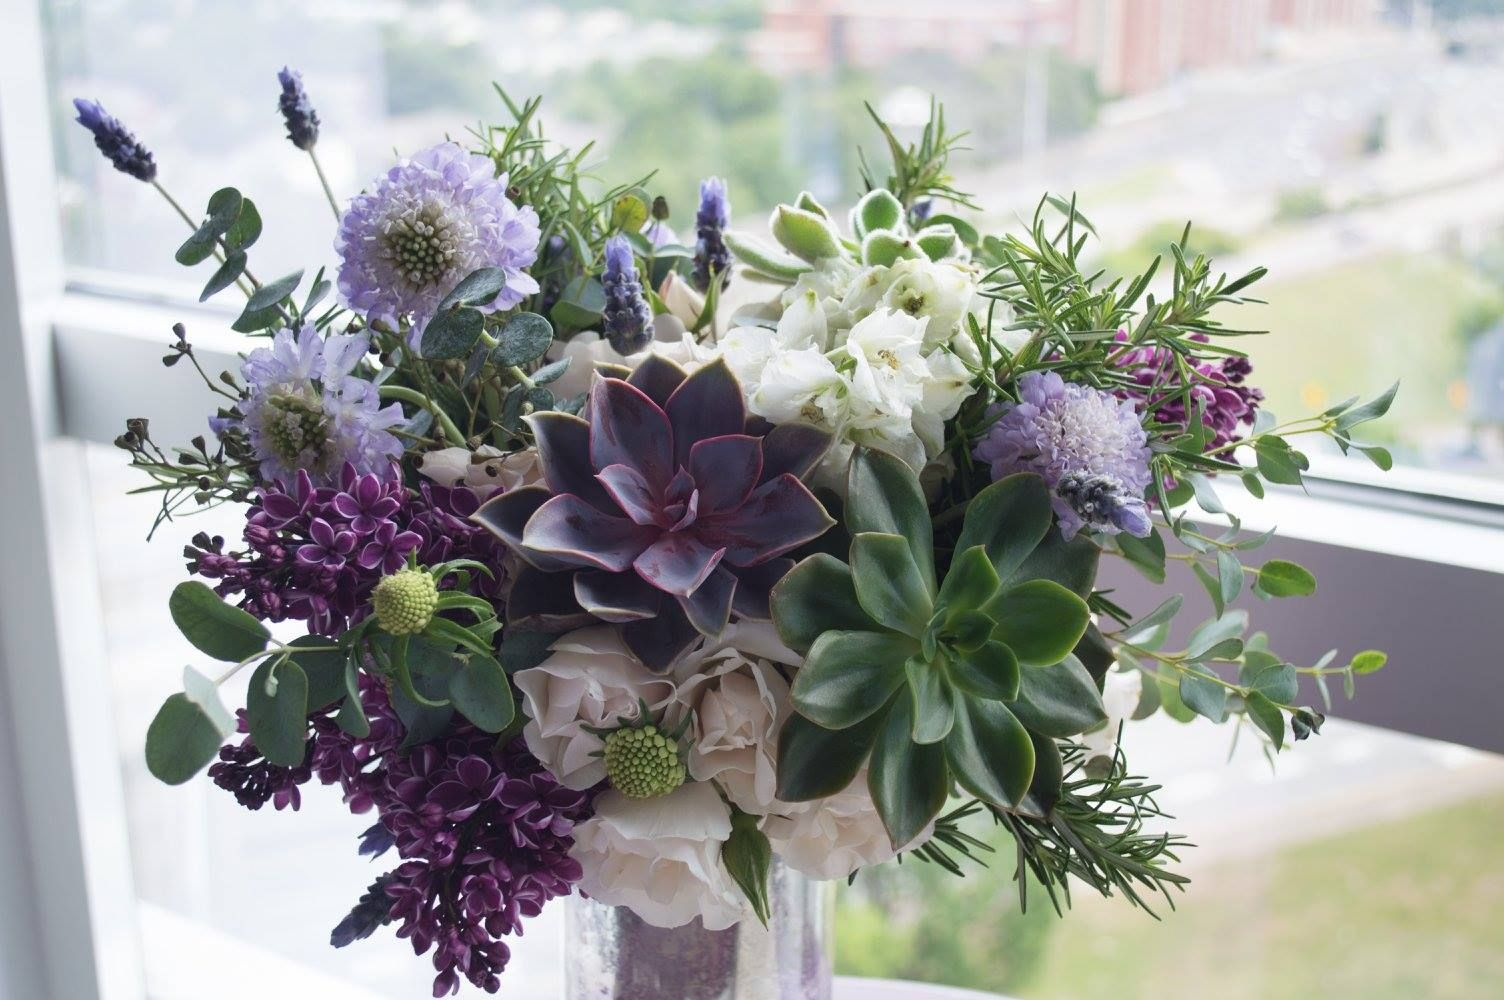 Lavender Bouquet Created By J Kaymay Llc Lilac Lavender Rosemary Succulent Scabiosa Eucalyptu Lavender Bouquet Succulent Bouquet Elegant Wedding Flowers